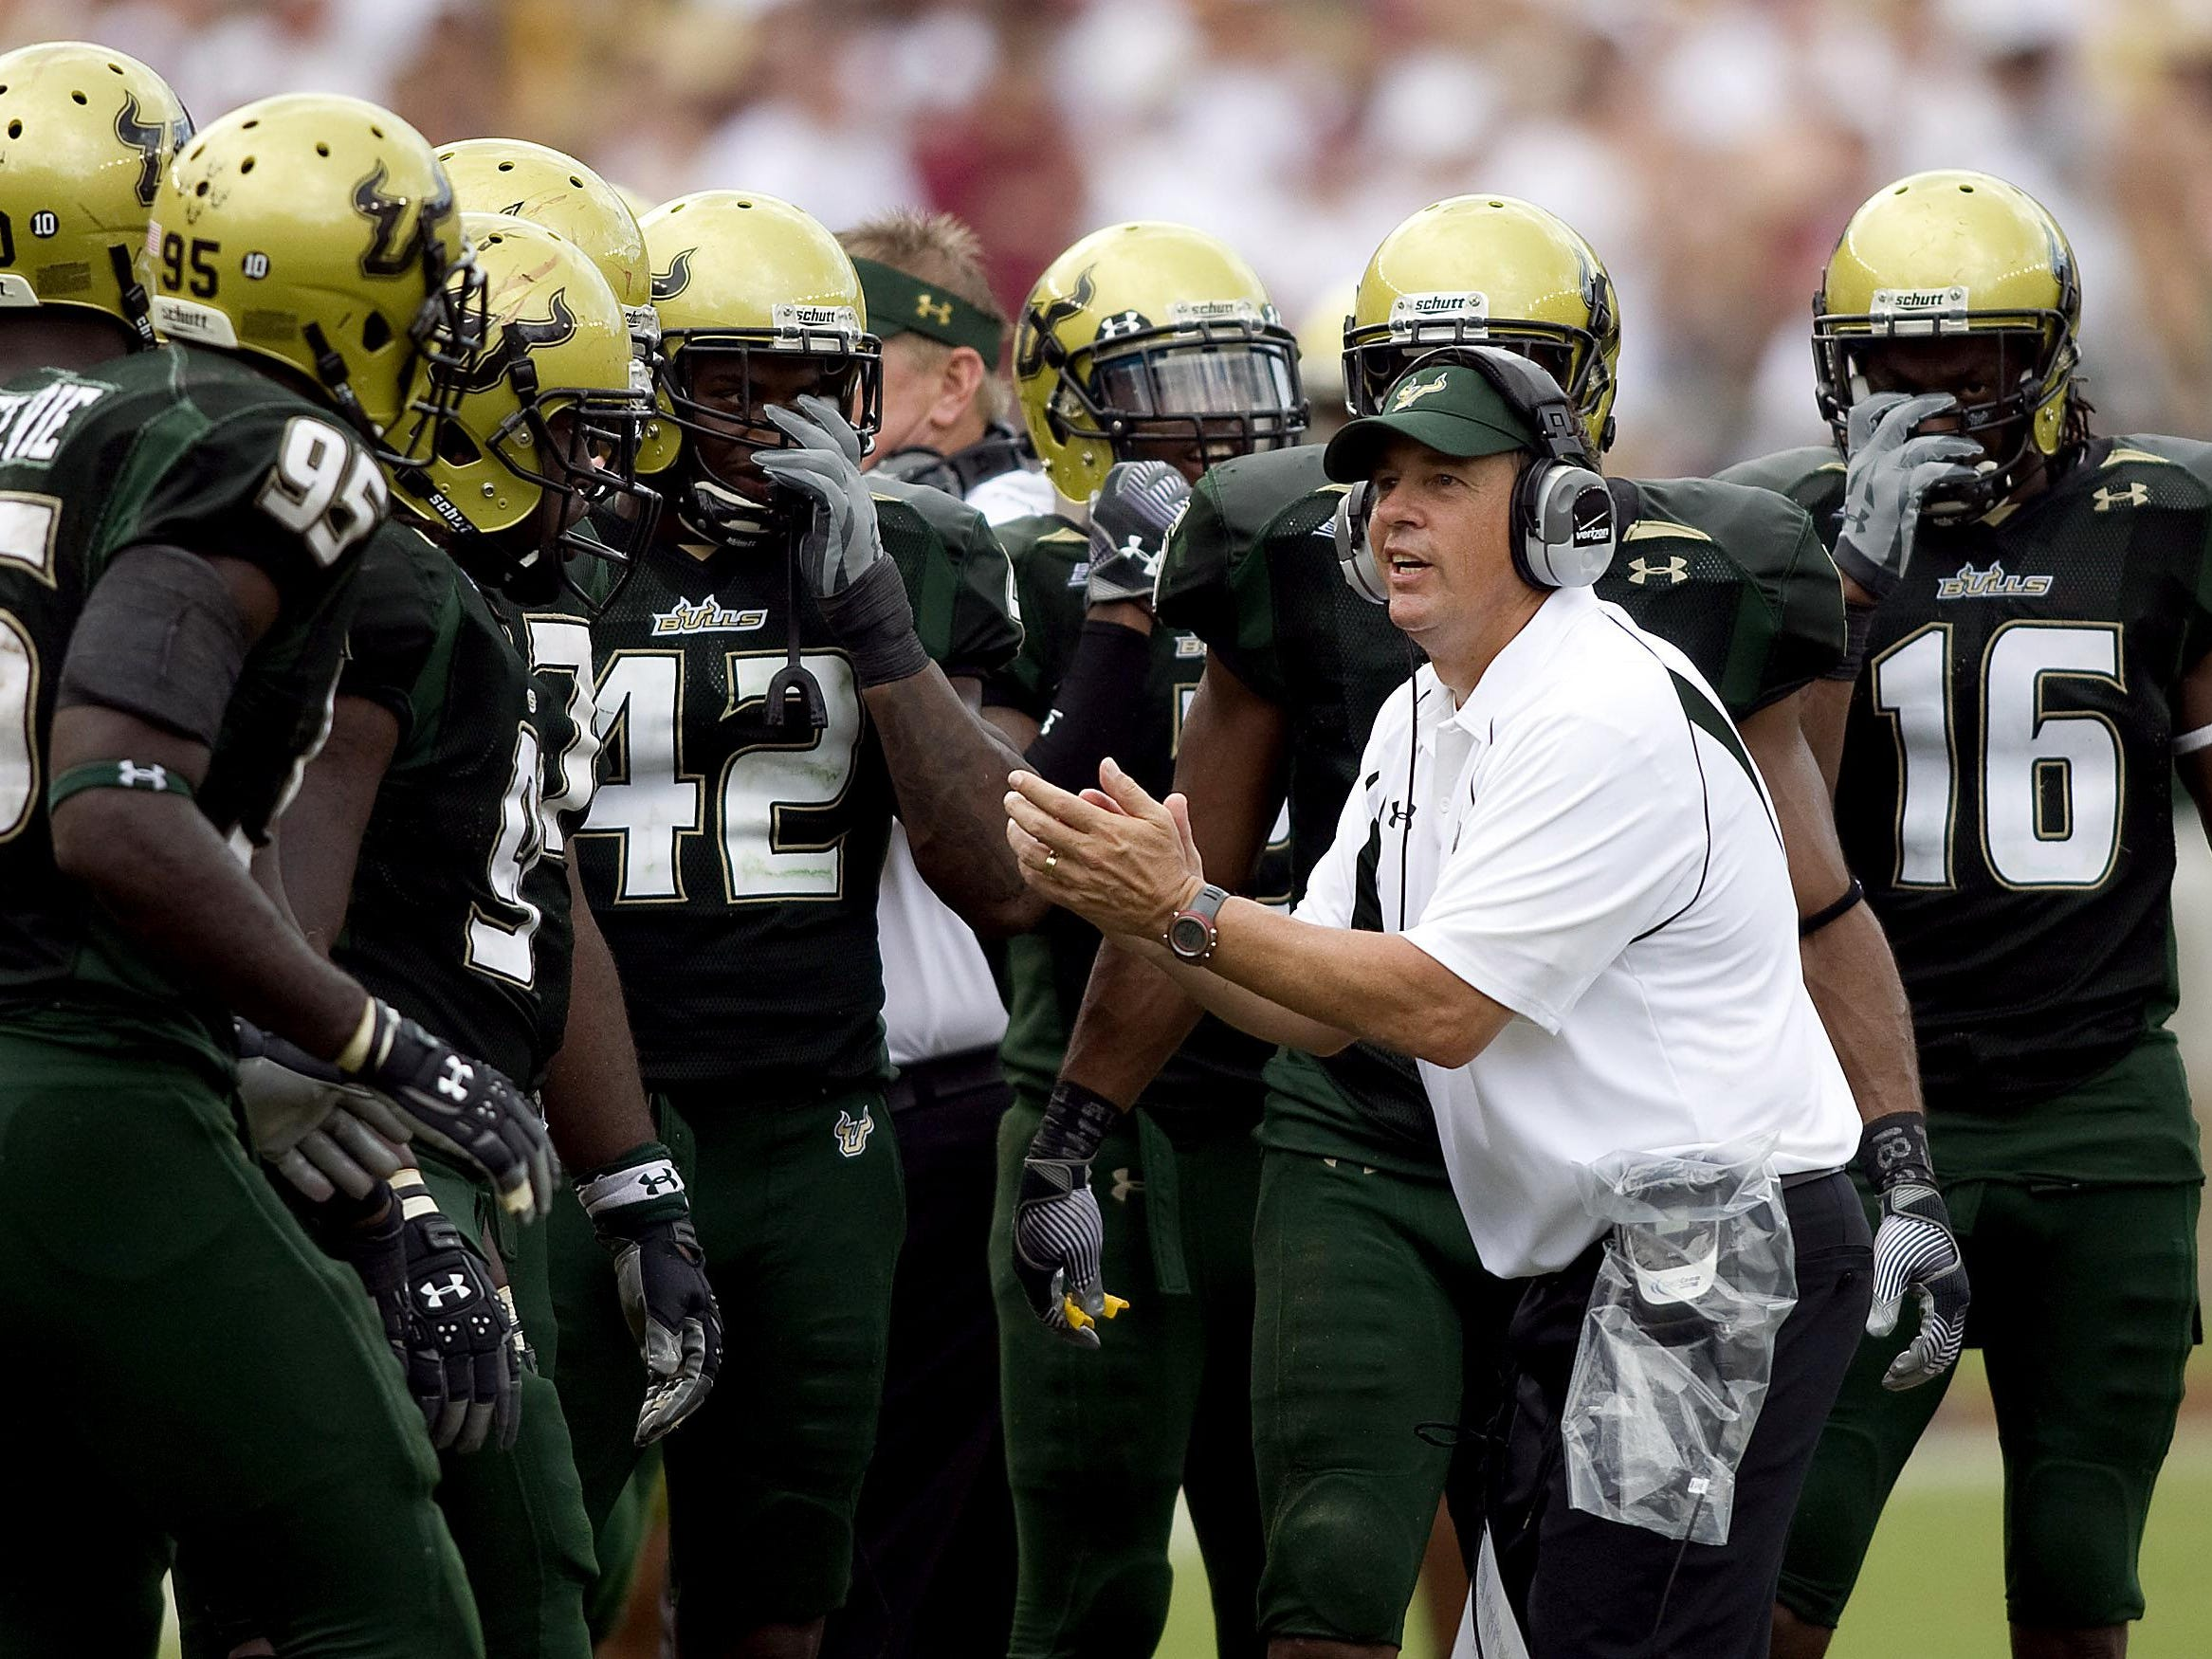 Joe Tresey, pictured as the defensive coordinator at South Florida in 2009, is the new athletic director at Clear Fork.